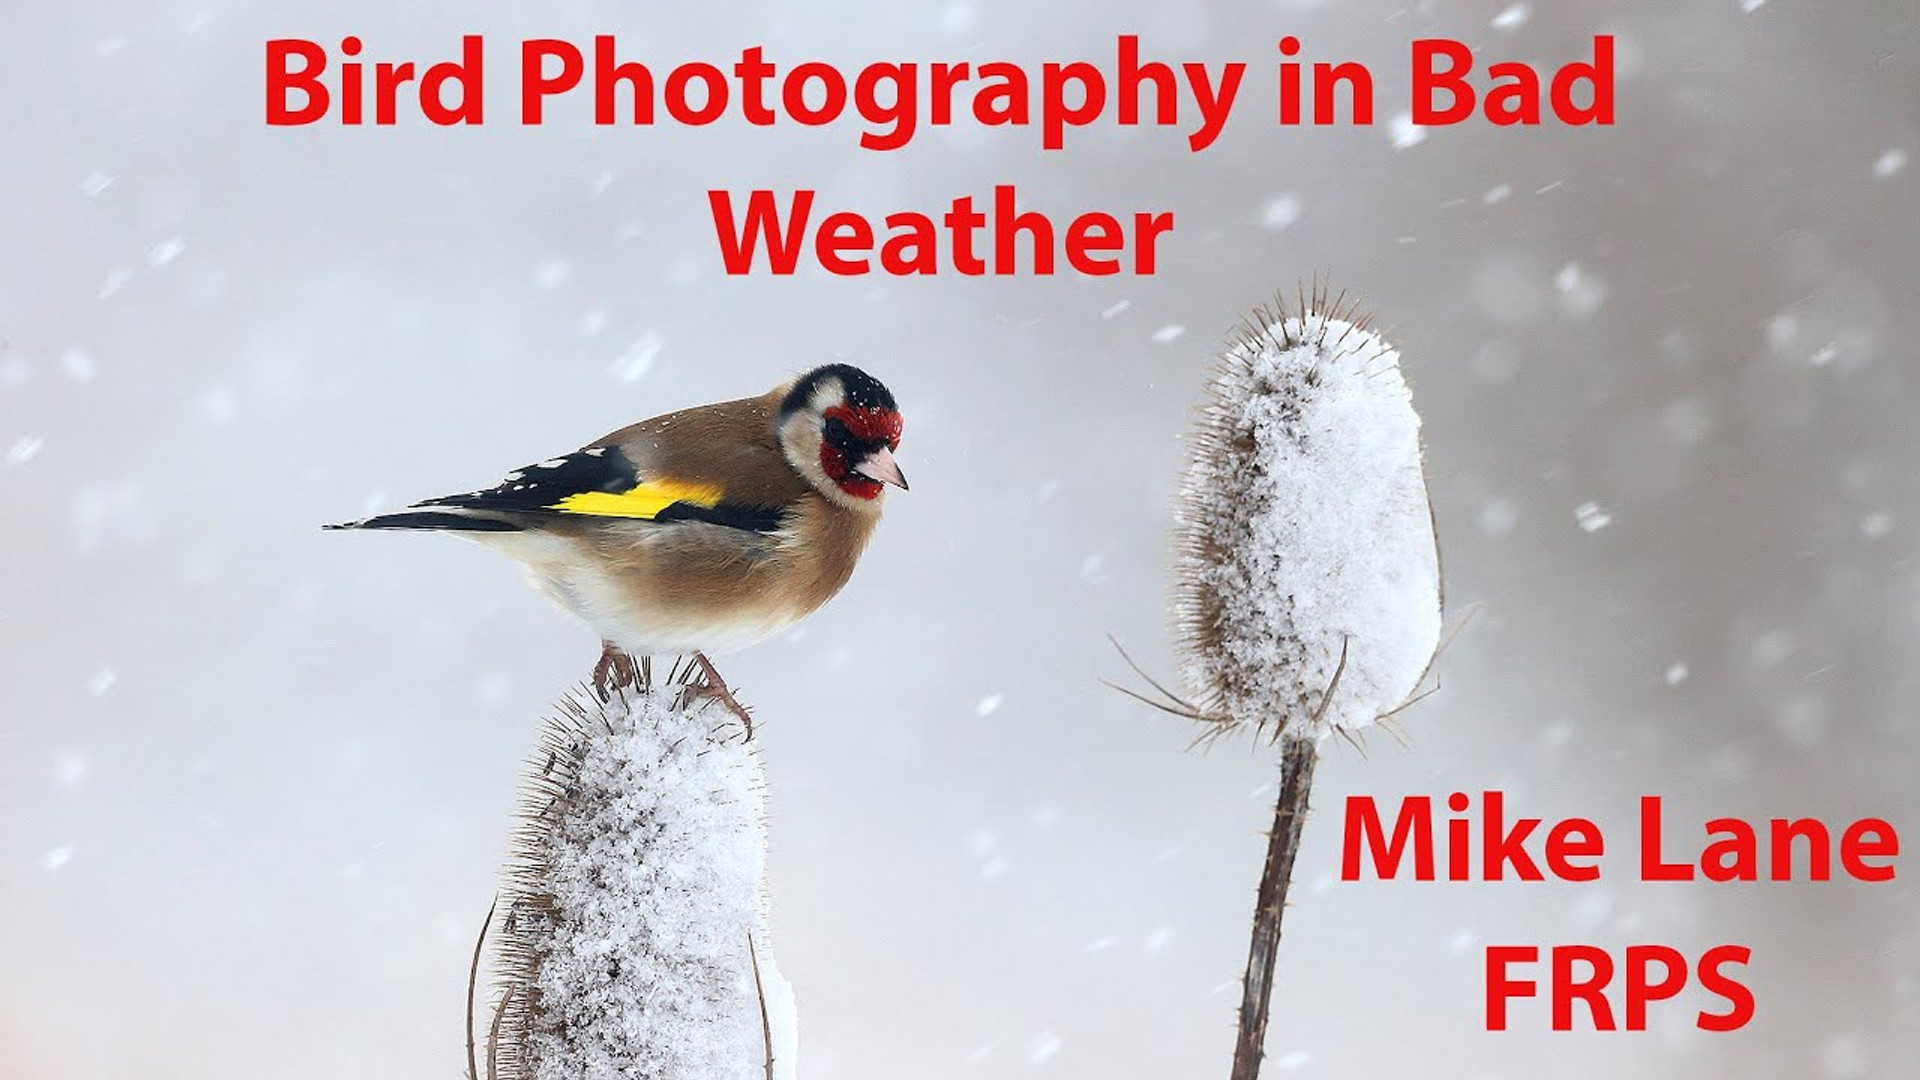 Bird Photography in Bad Weather